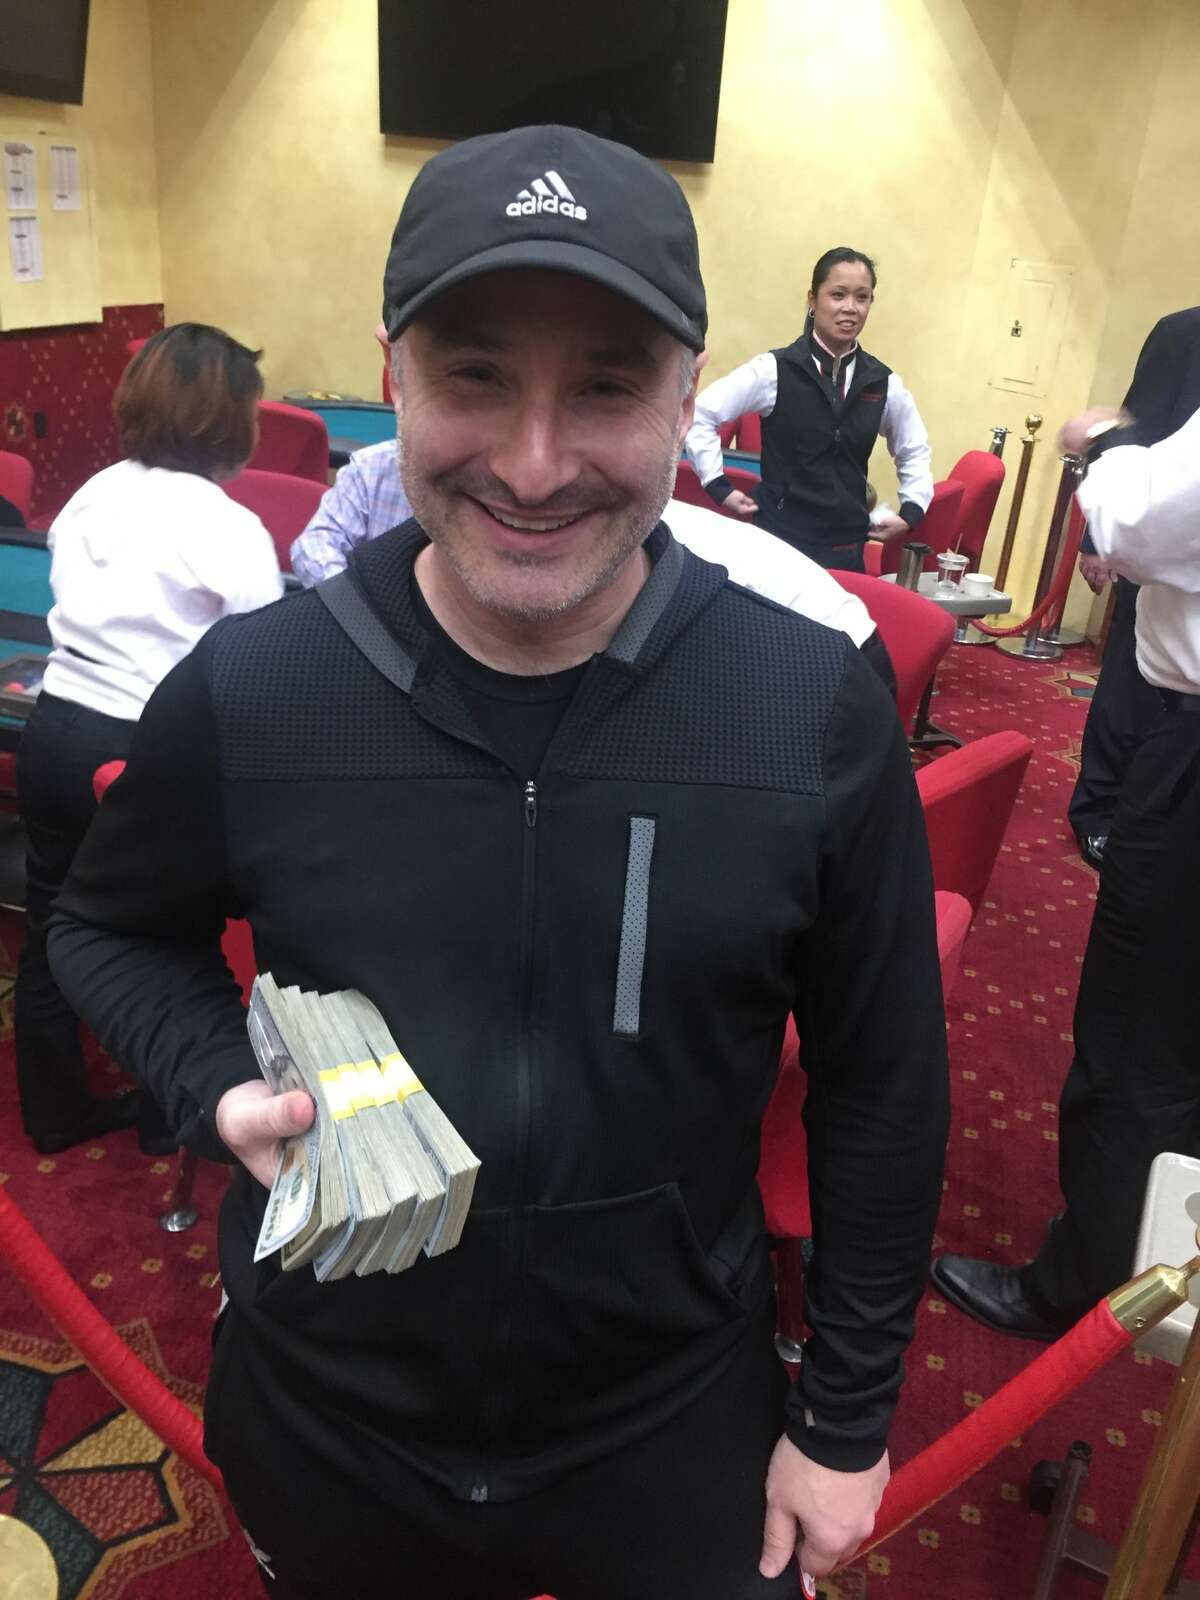 San Francisco tech executive recruiter and amateur poker player Doug Gladstone is shown with his winnings at the Deep Stack Texas Hold 'Em tournament at the Venetian Resort in Las Vegas.